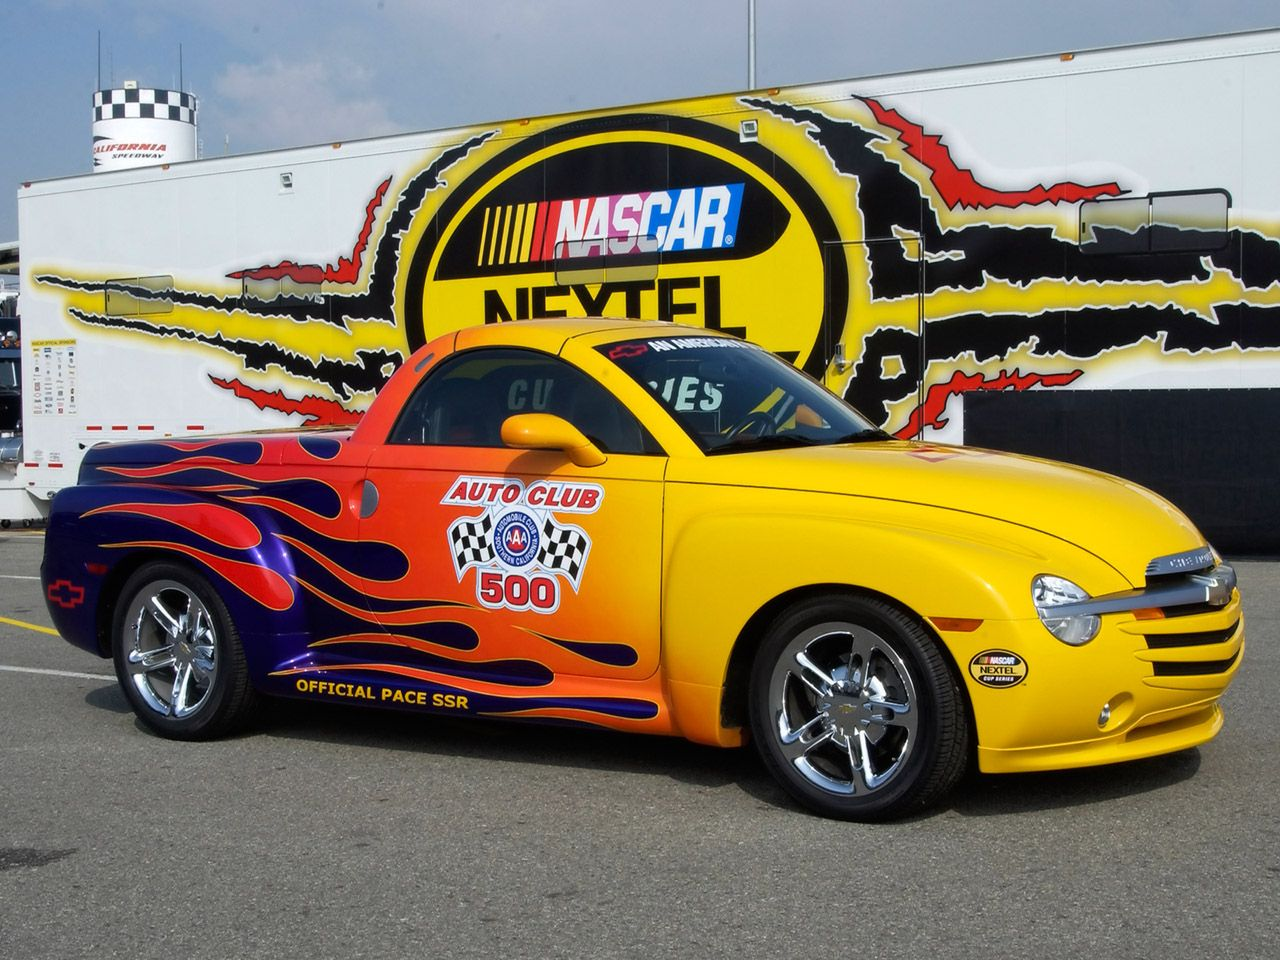 2005 Chevrolet Ssr Pace Vehicle Chevrolet Ssr Classic Cars